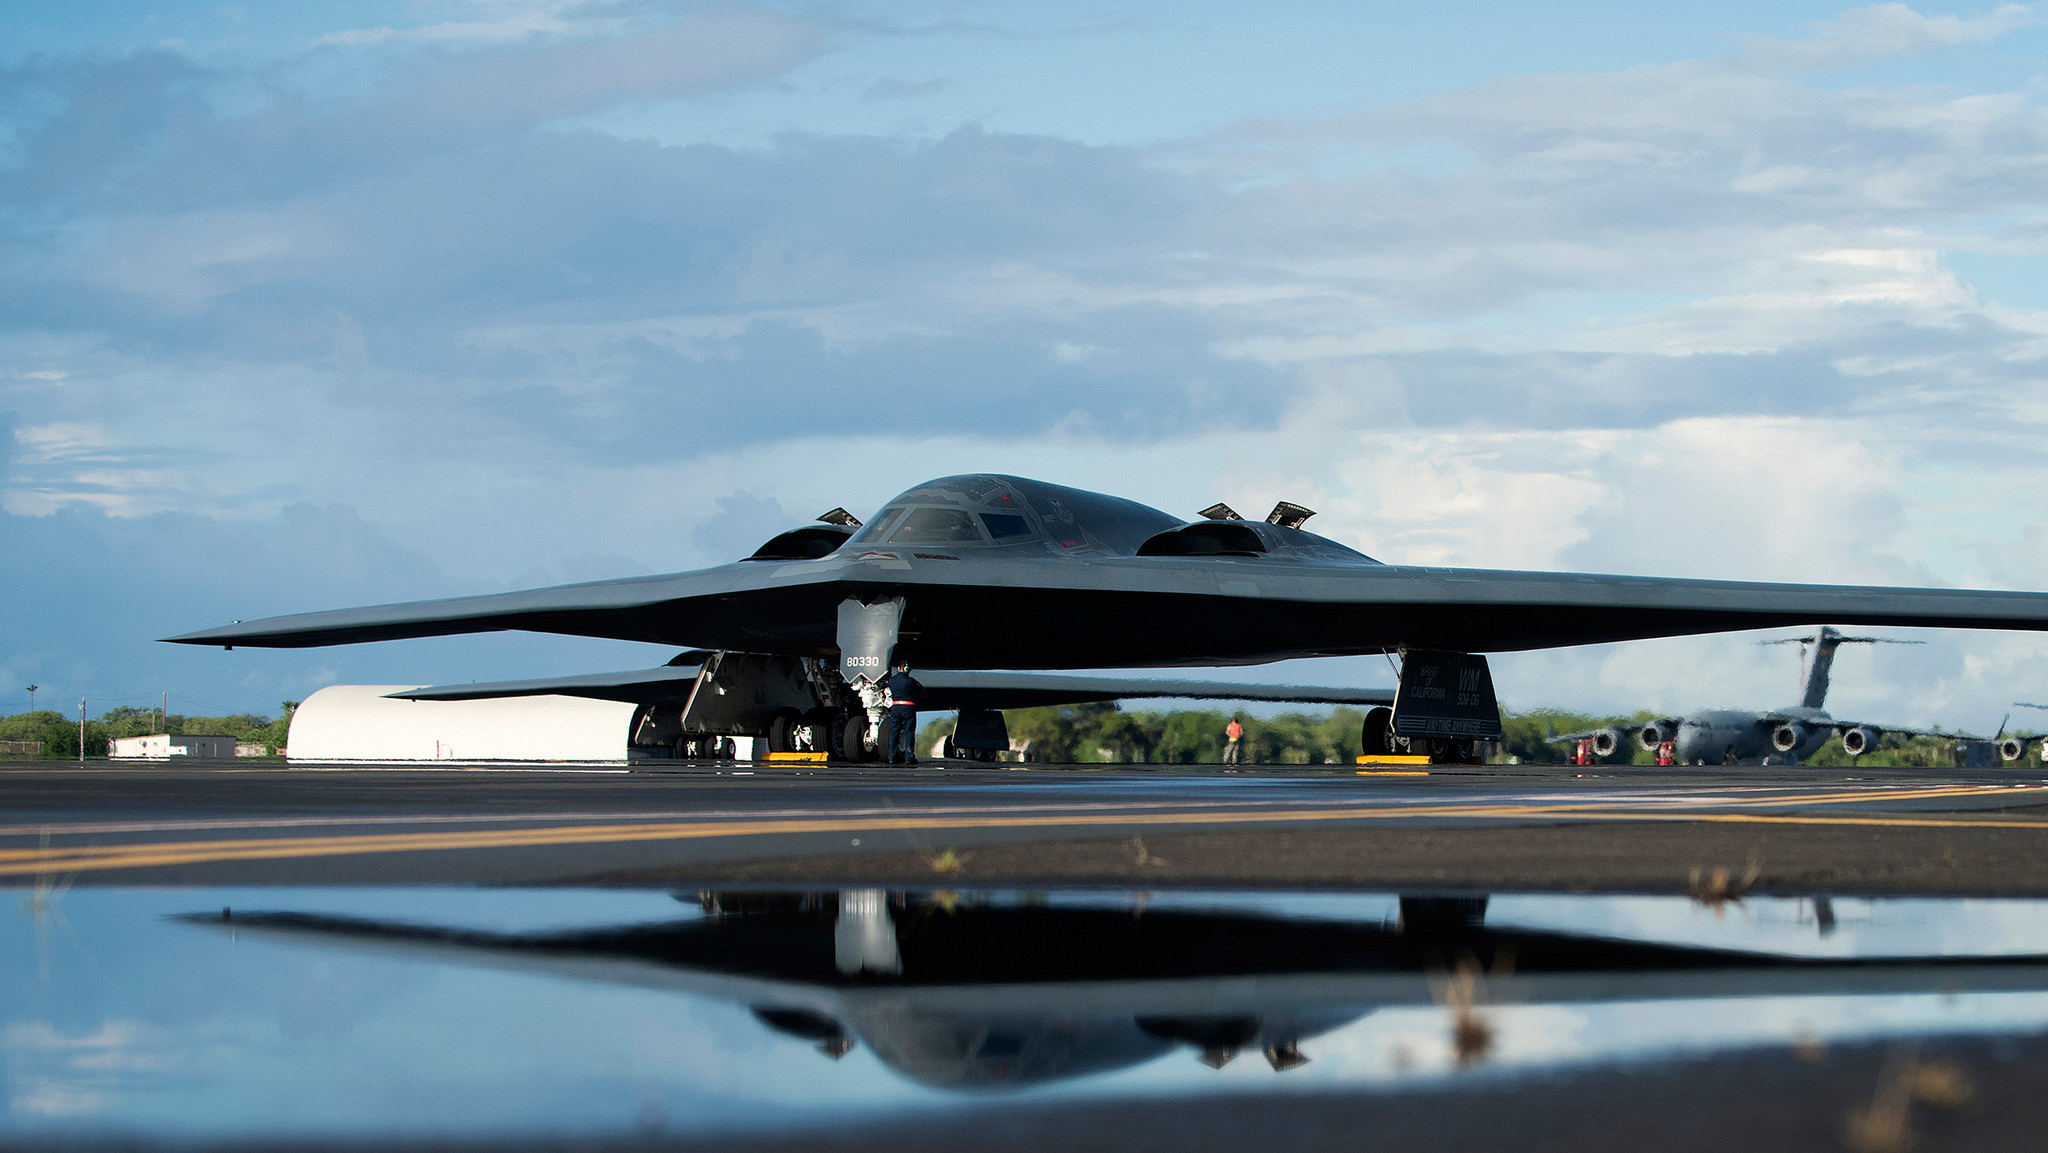 A U.S. Air Force B-2 Spirit, deployed from Whiteman Air Force Base, Mo., to Joint Base Pearl Harbor-Hickam, Hawaii, in support of the U.S. Strategic Command's Bomber Task Force deployment, is parked on the flightline on Sept. 26, 2018. (Staff Sgt. Danielle Quilla/Air Force)